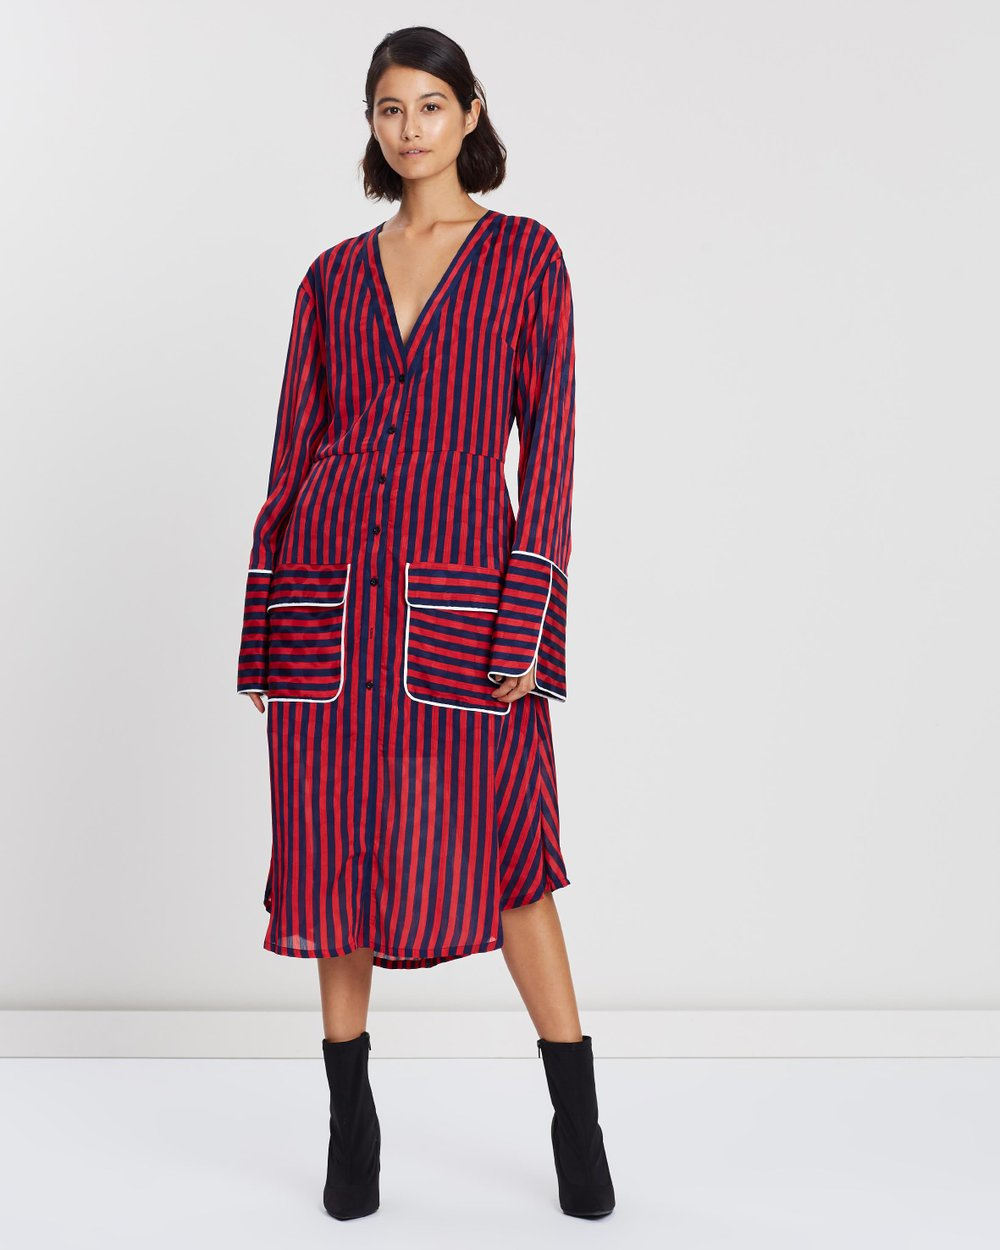 4842d729f6277 Striped A-Line Shirt Dress by House of Holland Online | THE ICONIC |  Australia